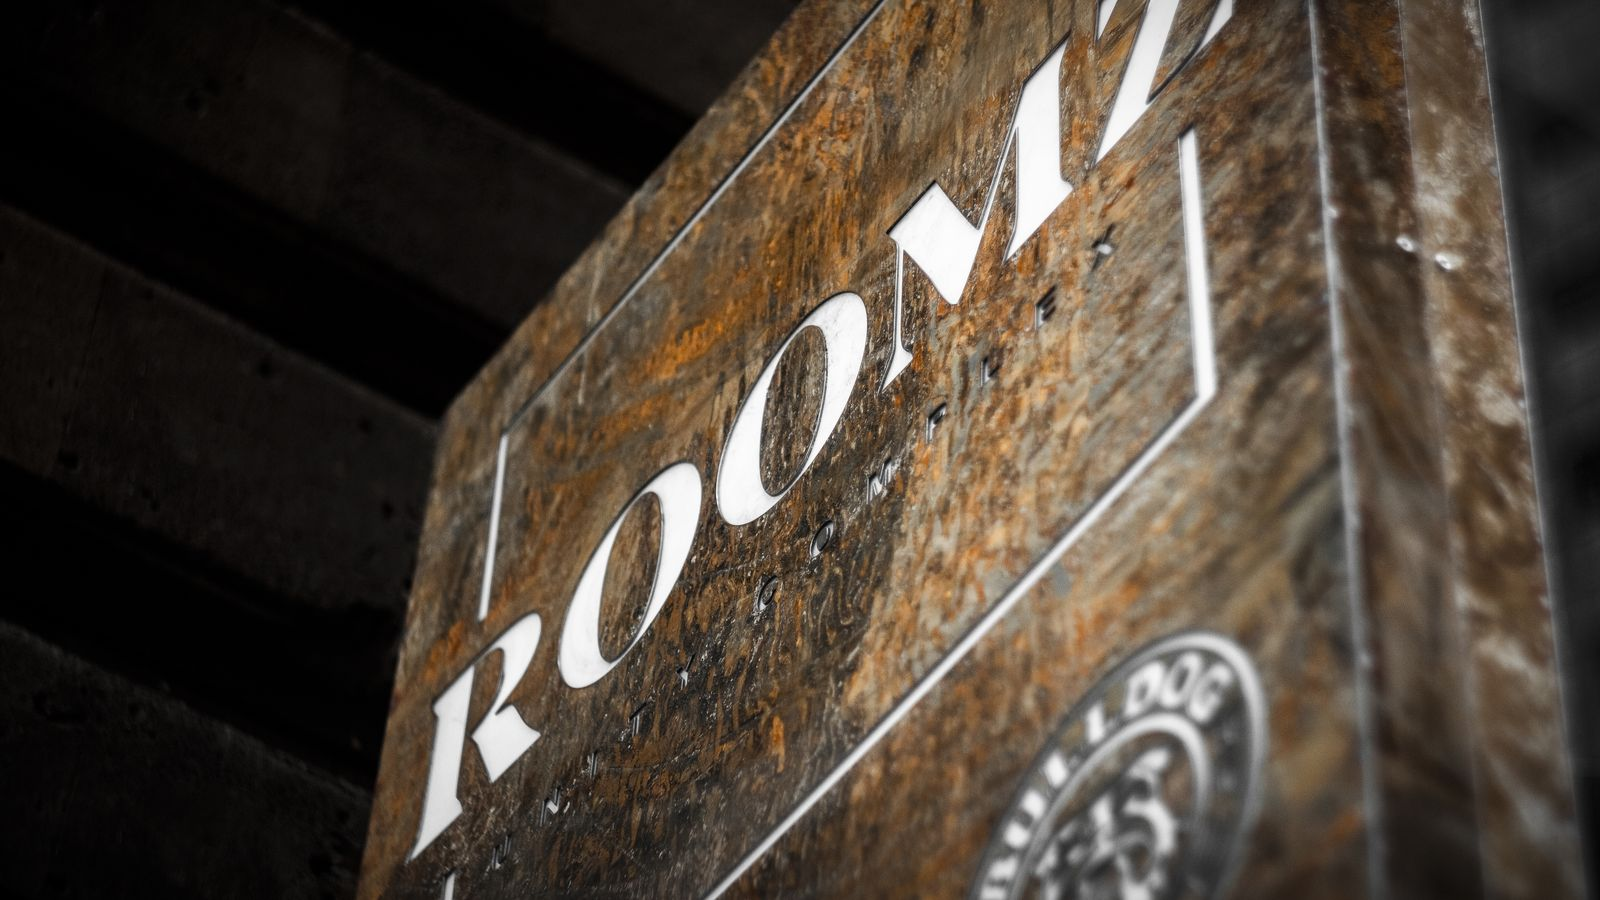 Roomz custom light box with a cabinet in a rustic style made of aluminum and acrylic for restaurant outdoor visibility